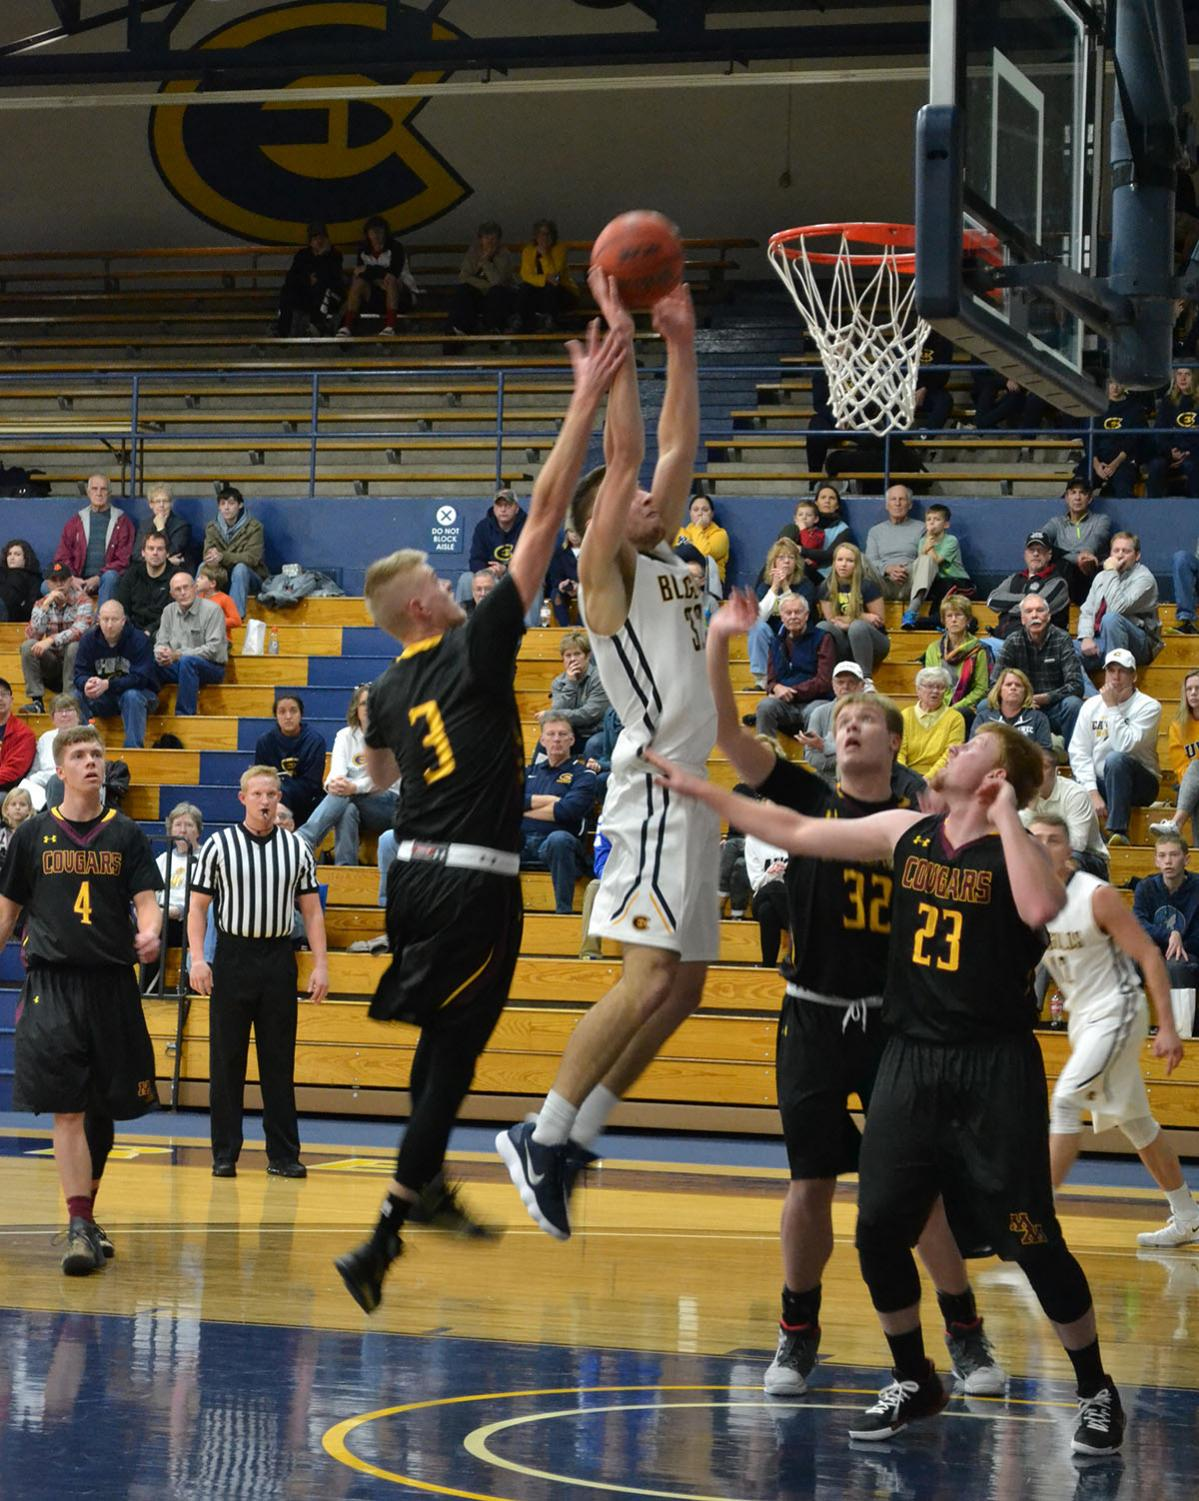 Men's basketball achieved a victory on the road this weekend against University of Minnesota-Morris.